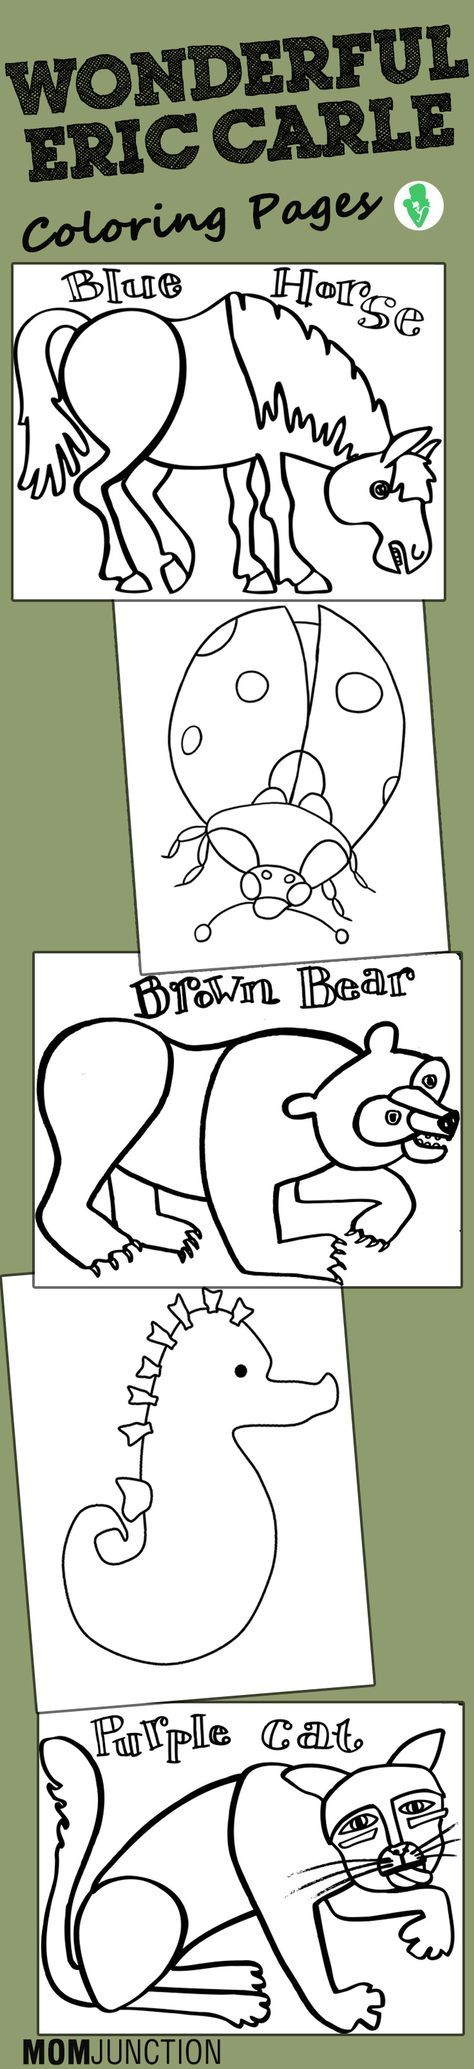 Eric Carle Coloring Pages Free Printables Eric Carle Preschool Coloring Pages